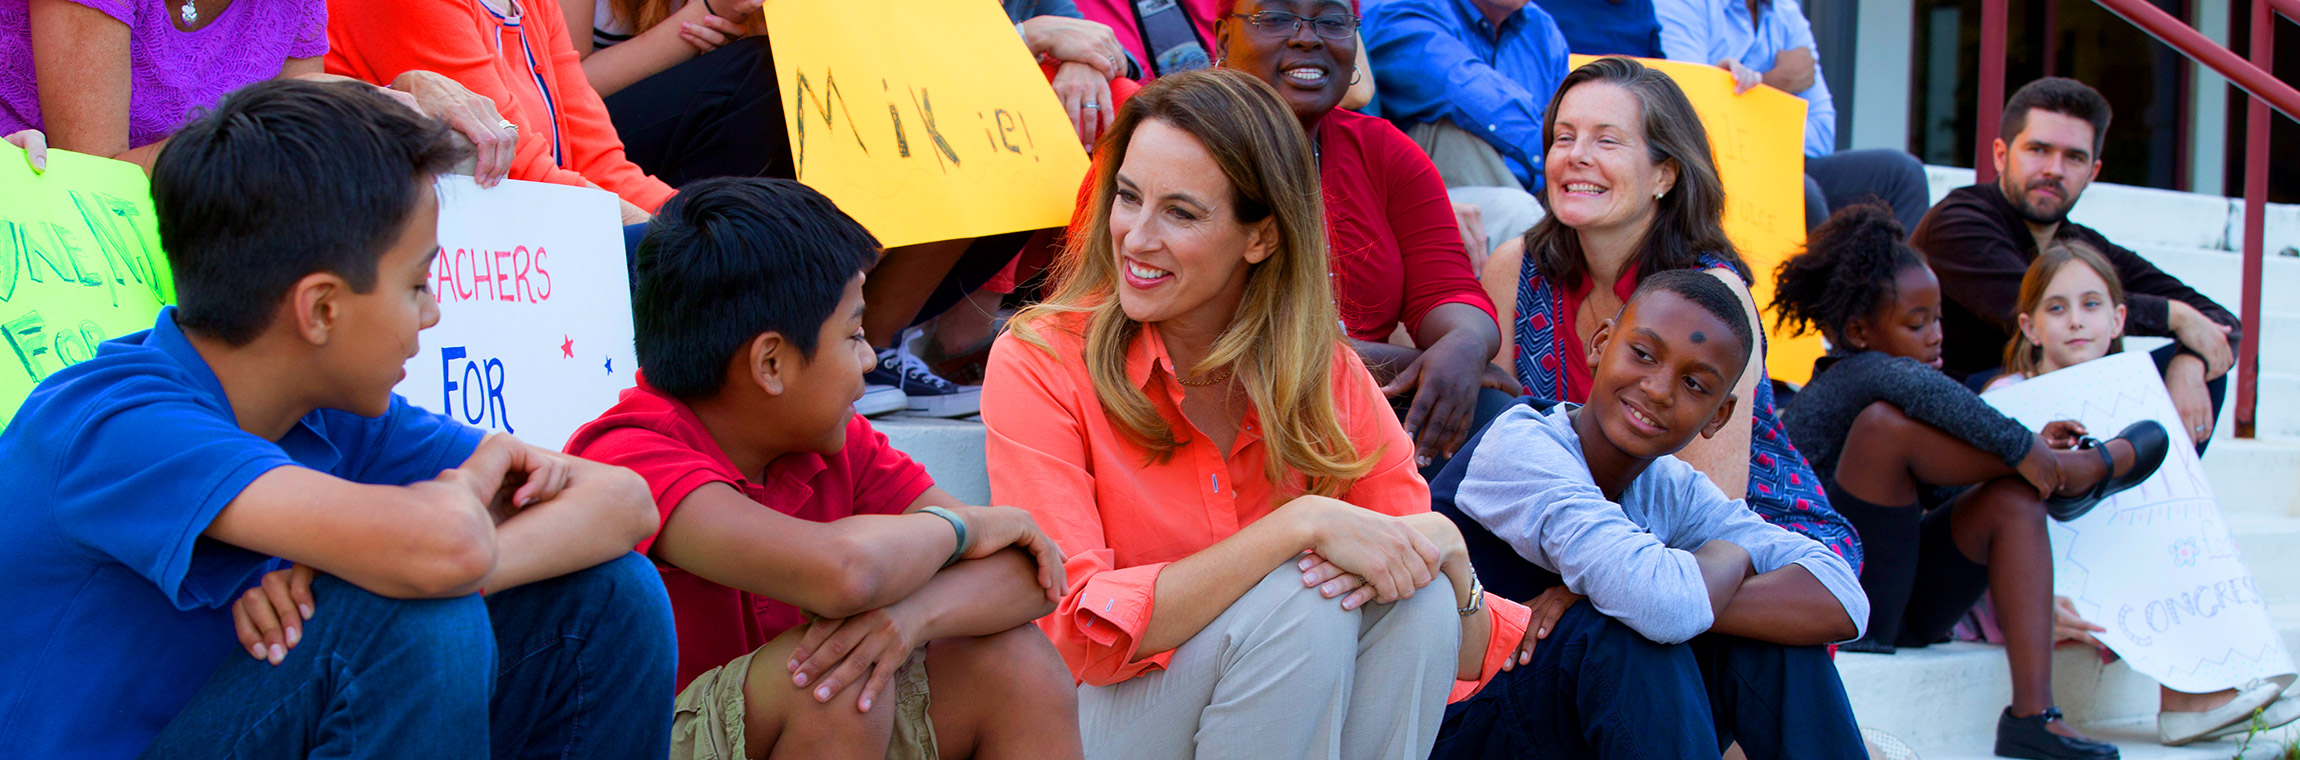 Mikie Sherrill Democratic Candidate for US Congress NJ New Jersey 11th District November 2018 Visiting School Children